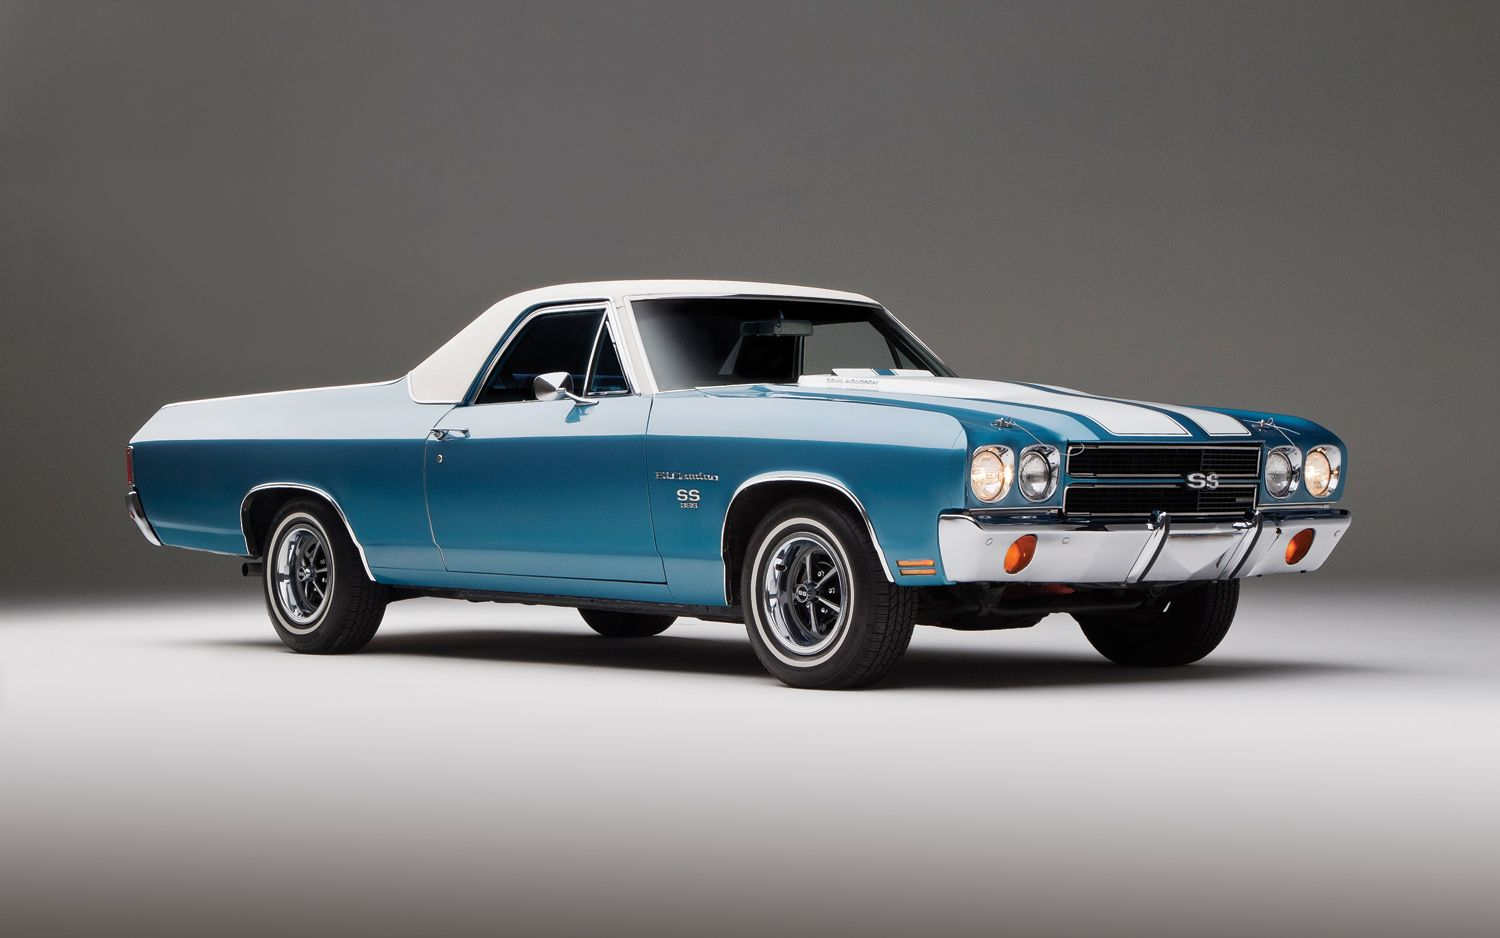 Used Chevy El Camino For Sale Online Today http://www.cars-for-sales ...